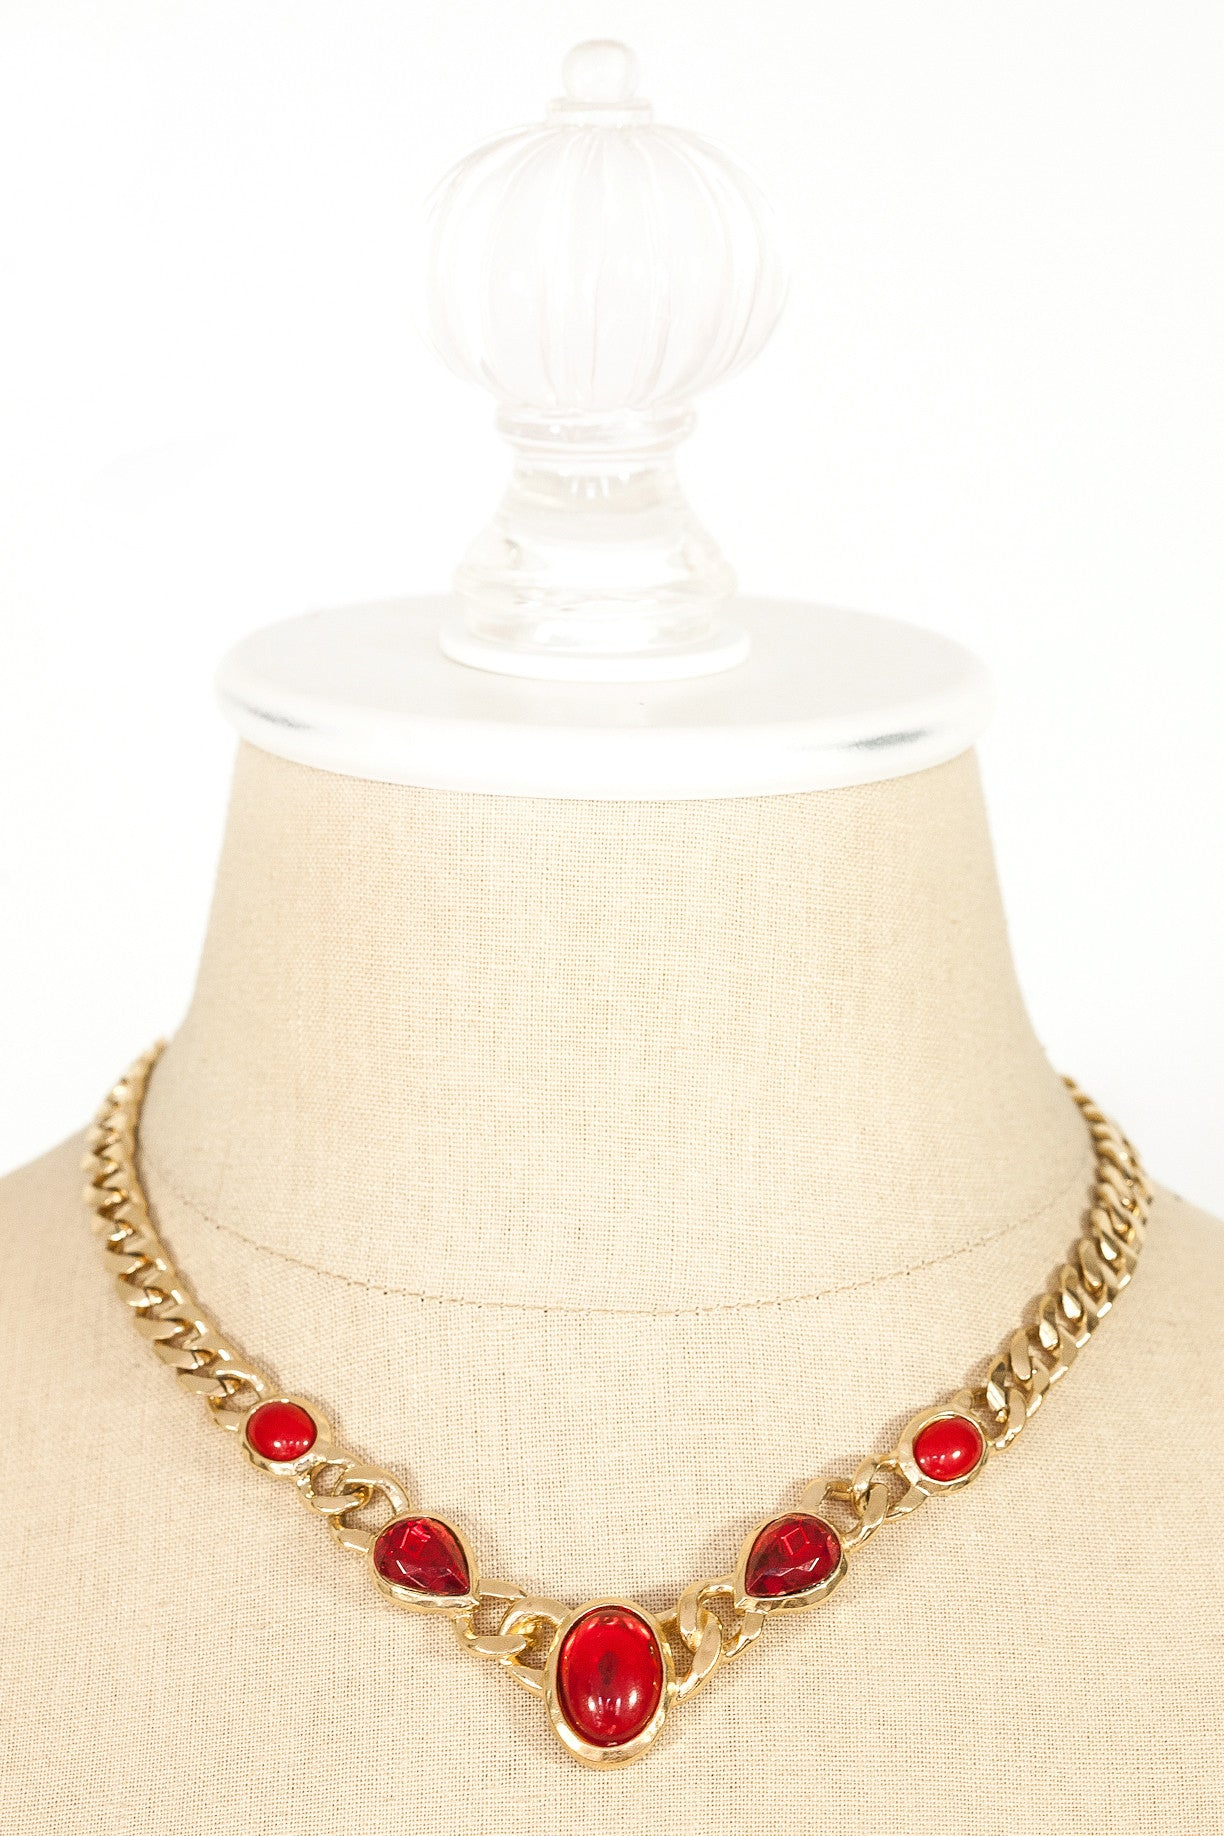 80's__Trifari__Red Statement Necklace